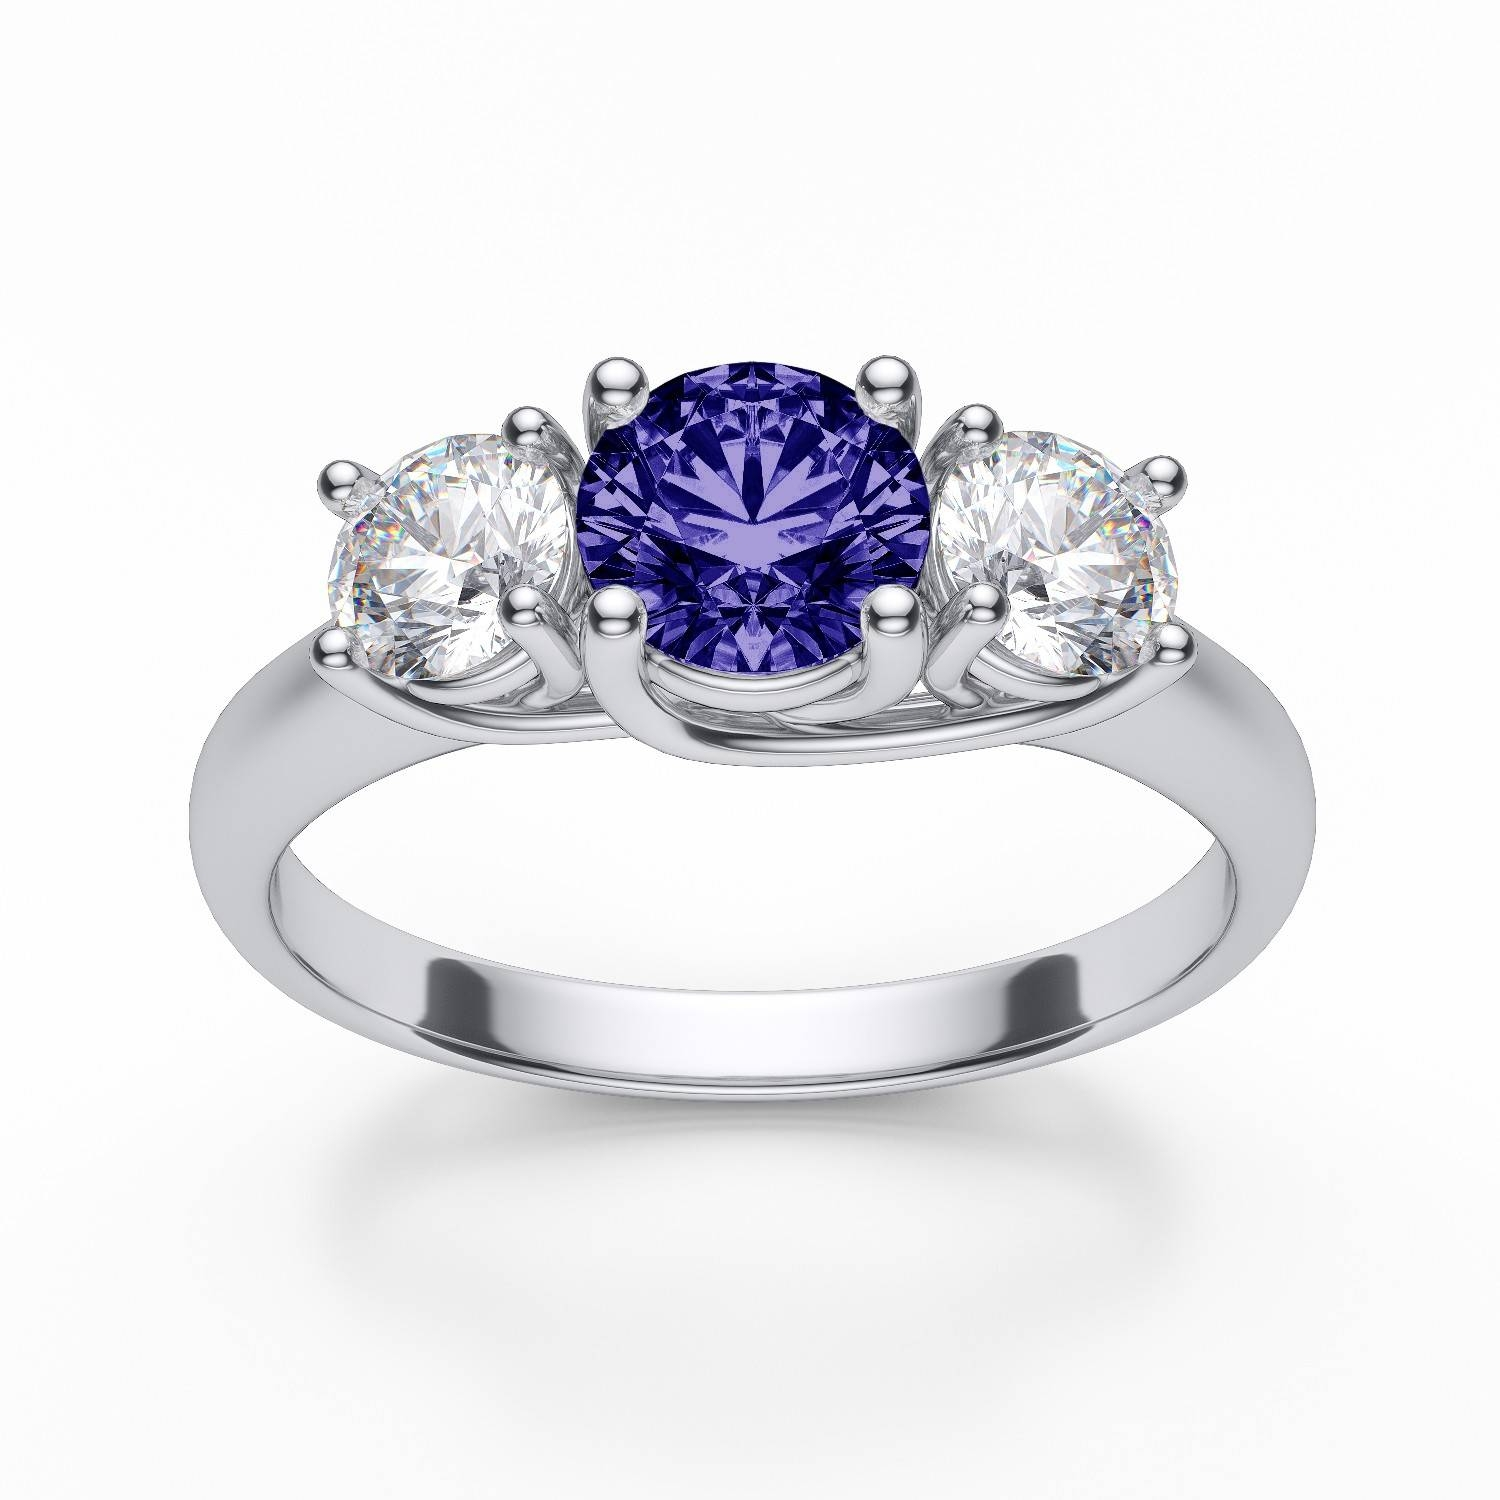 5mm Prong Set Tanzanite And Diamond Engagement Ring In 14k White Gold Inside Tanzanite White Gold Engagement Rings (View 10 of 15)